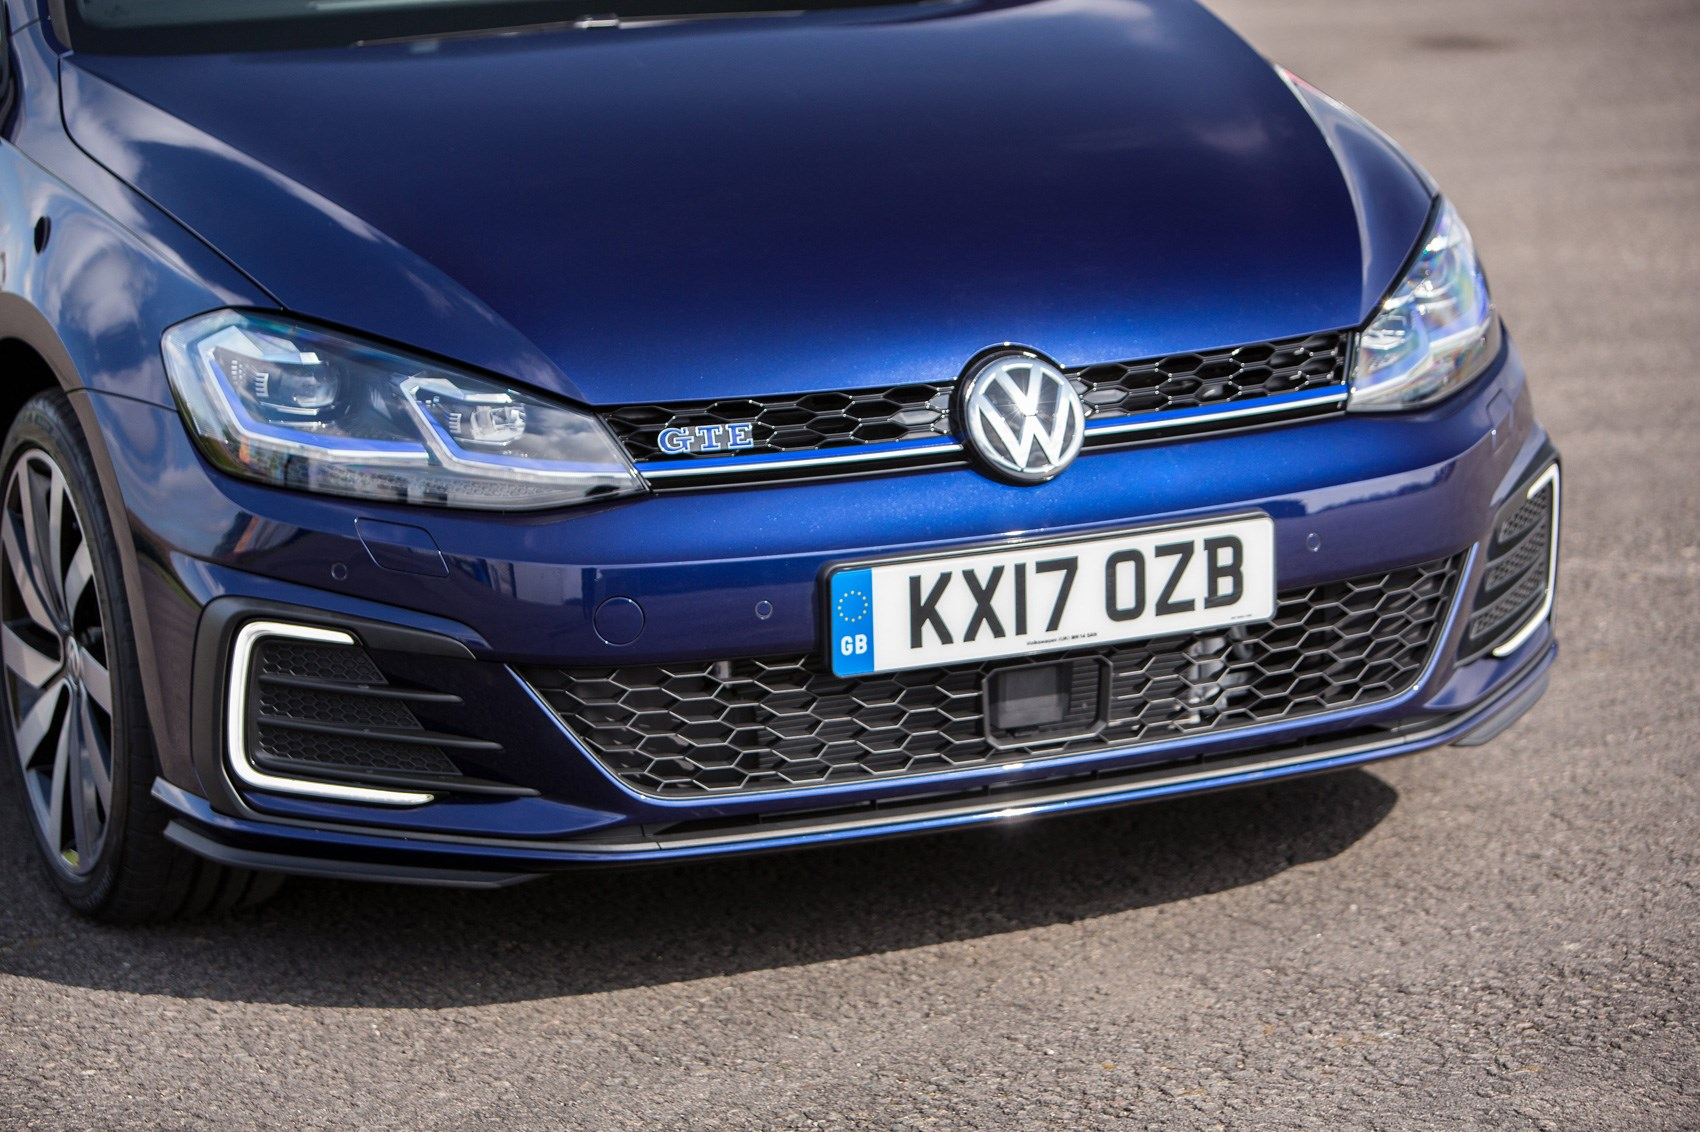 Vw Golf Gte Hybrid Specs Price Pictures Newore